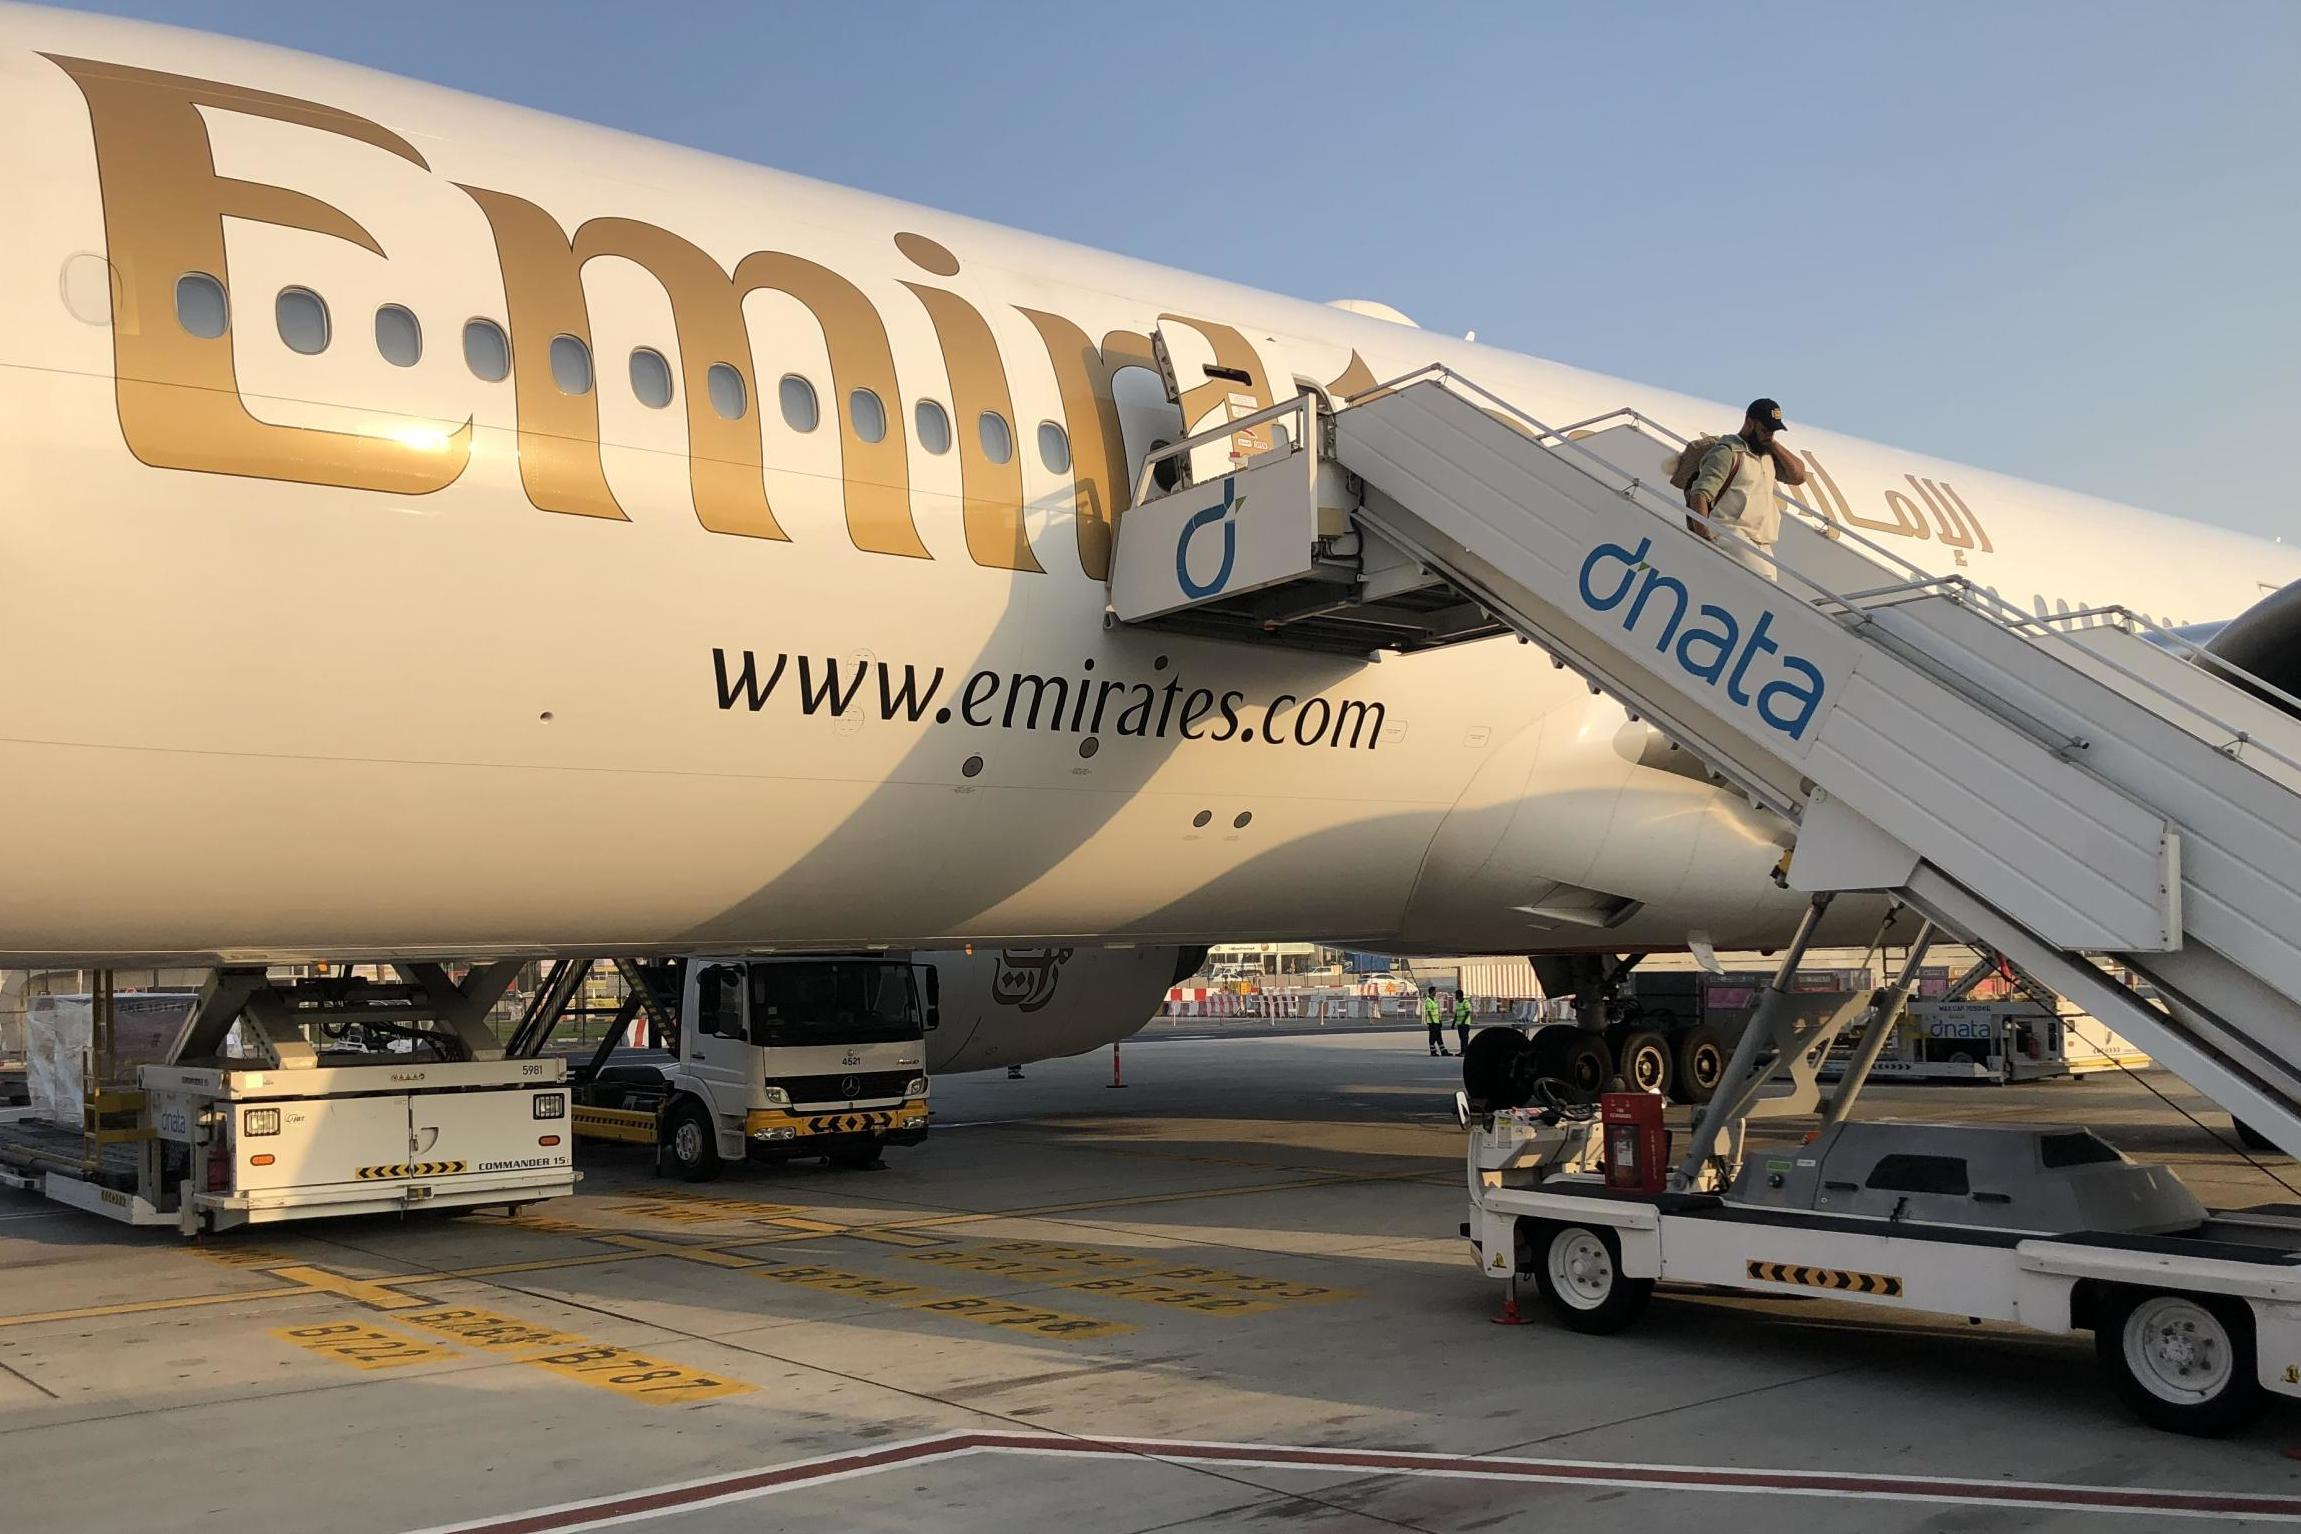 Emirates tells customers: 'Wait a year for refunds on cancelled flights'